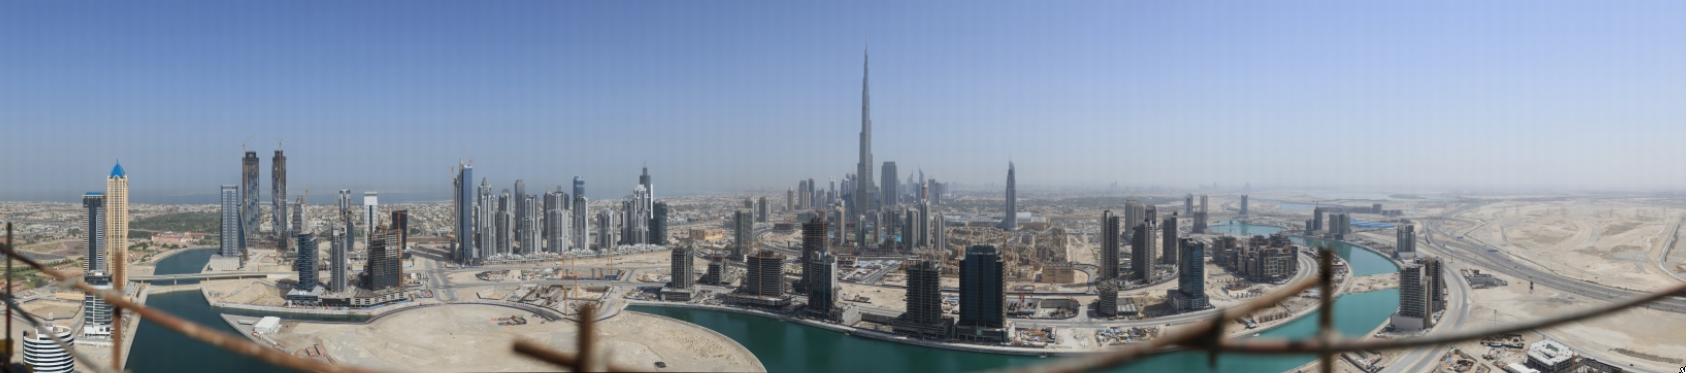 45 Gigapixel Panorama of Dubai, World's Largest Digital Photo